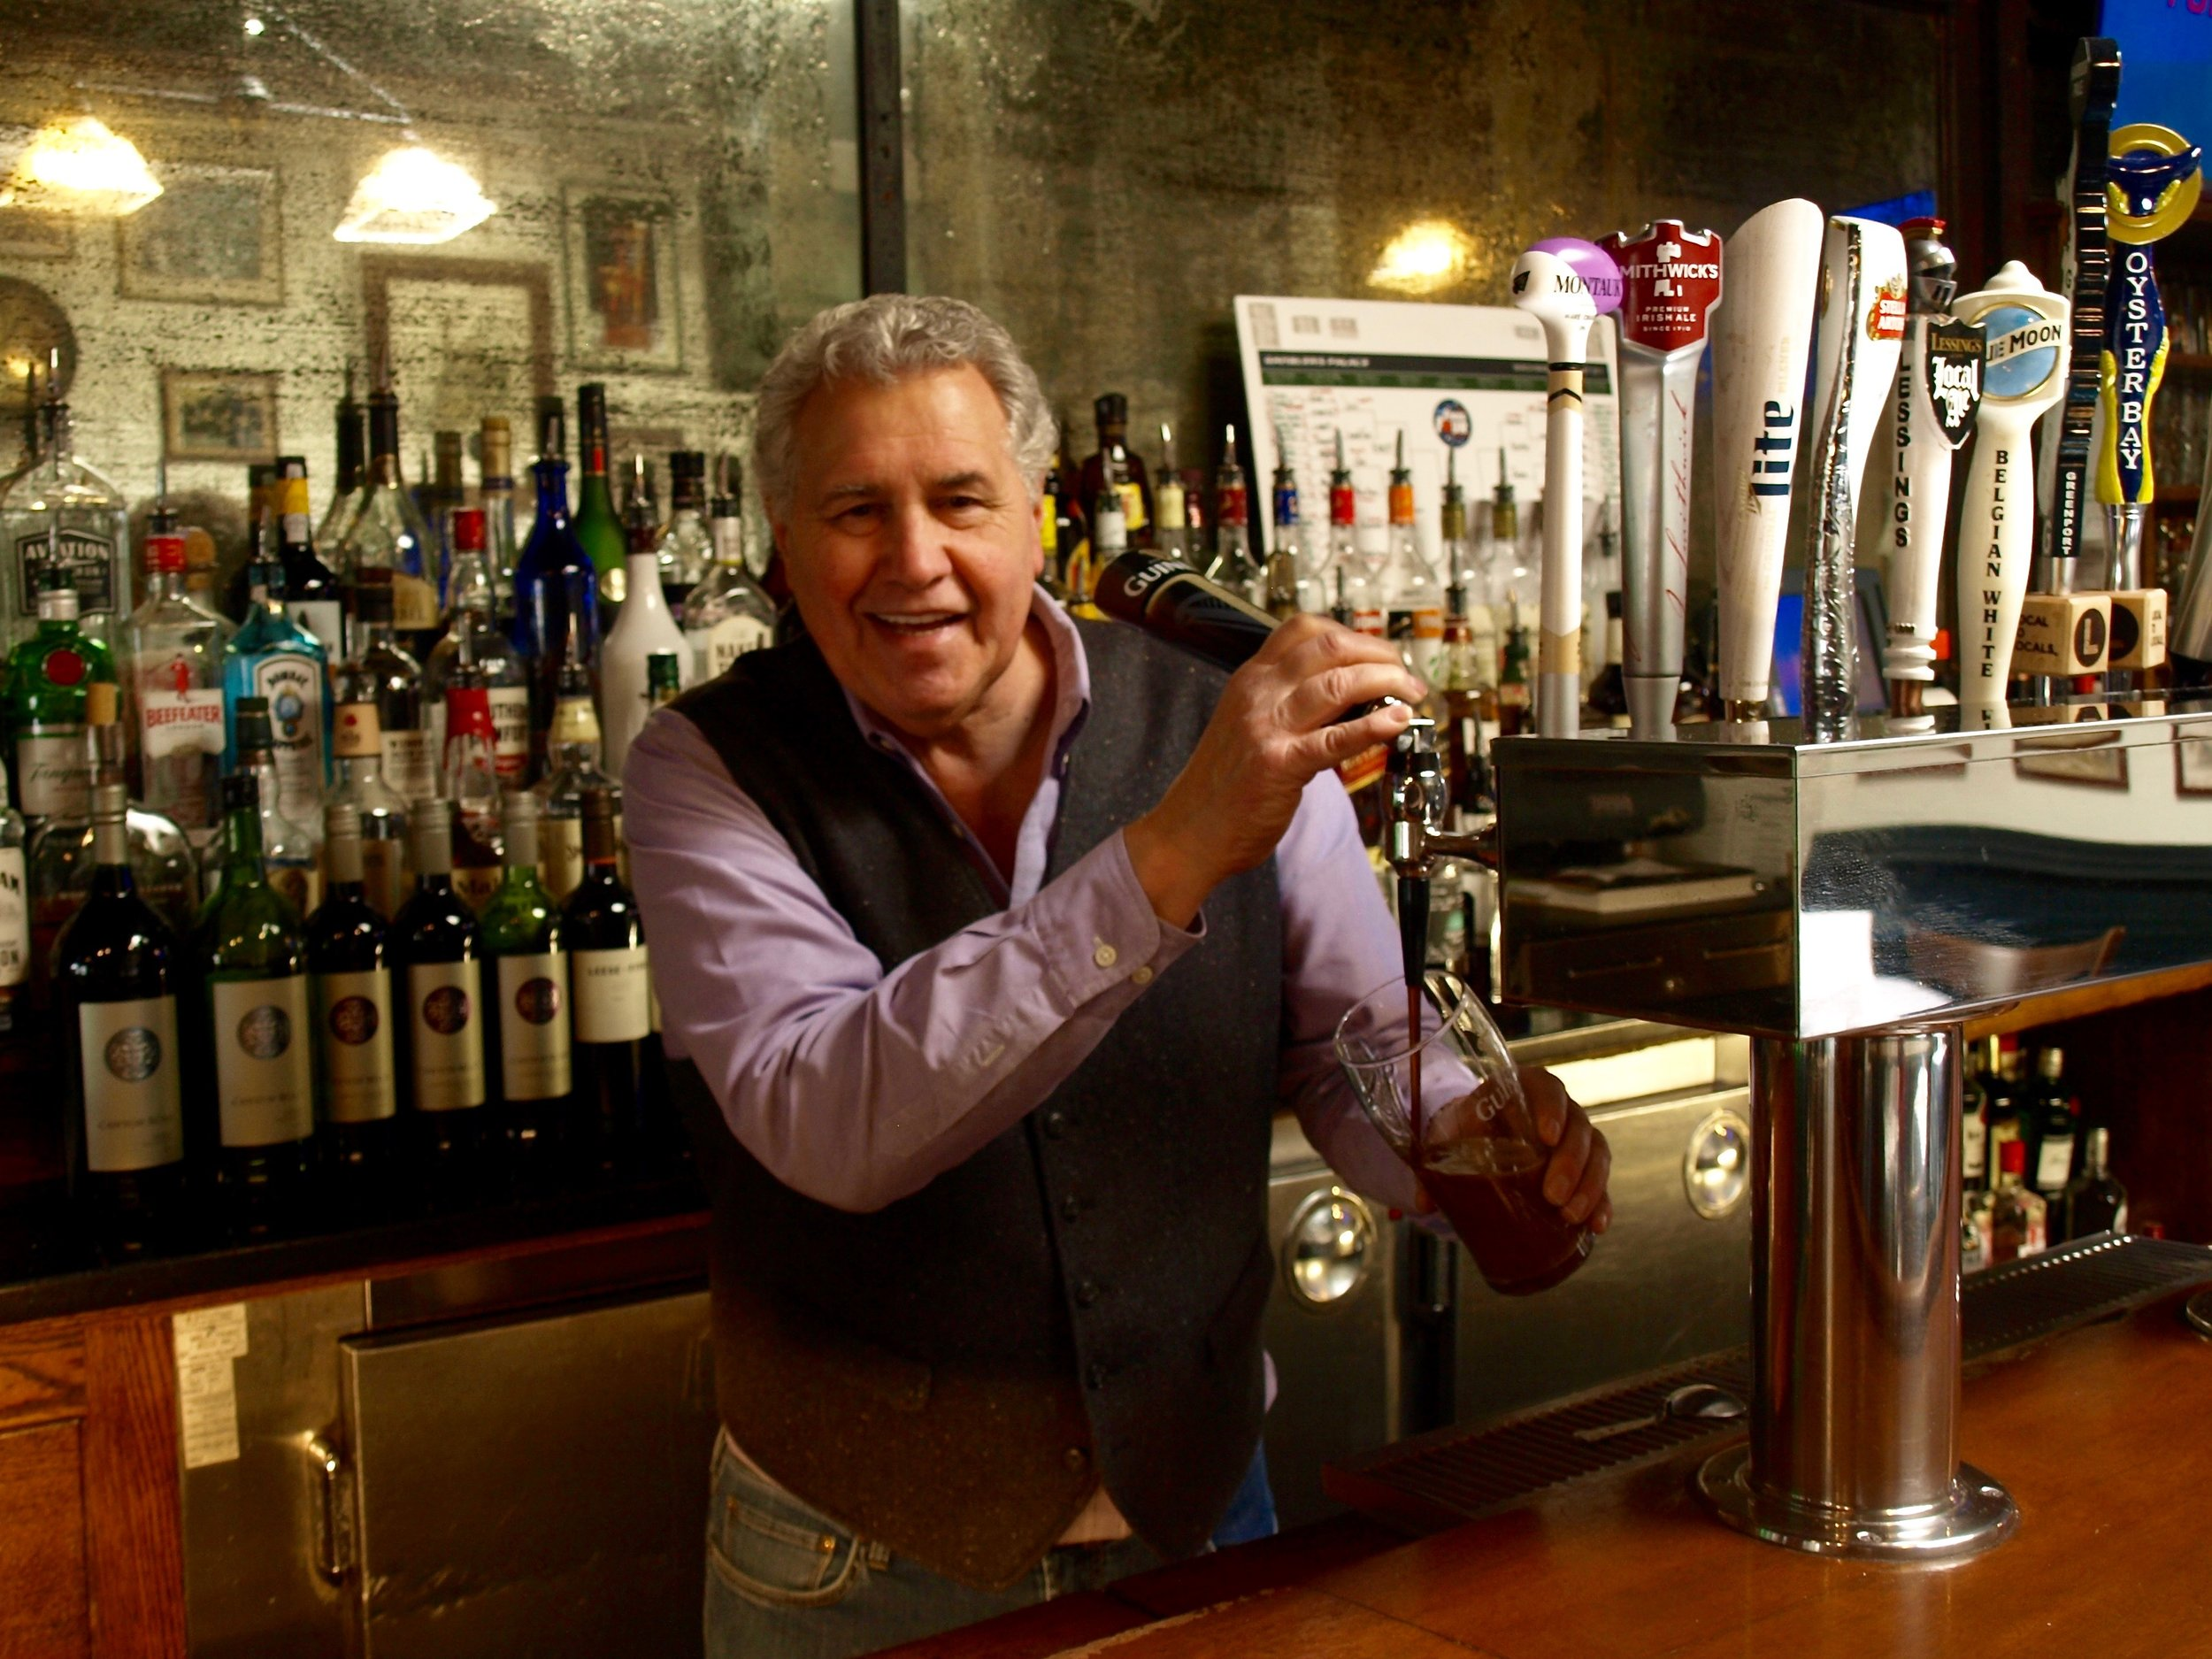 Always ready with a beer and a smile from behind the bar, manager Tommy Forte is the face of Finnegan's.